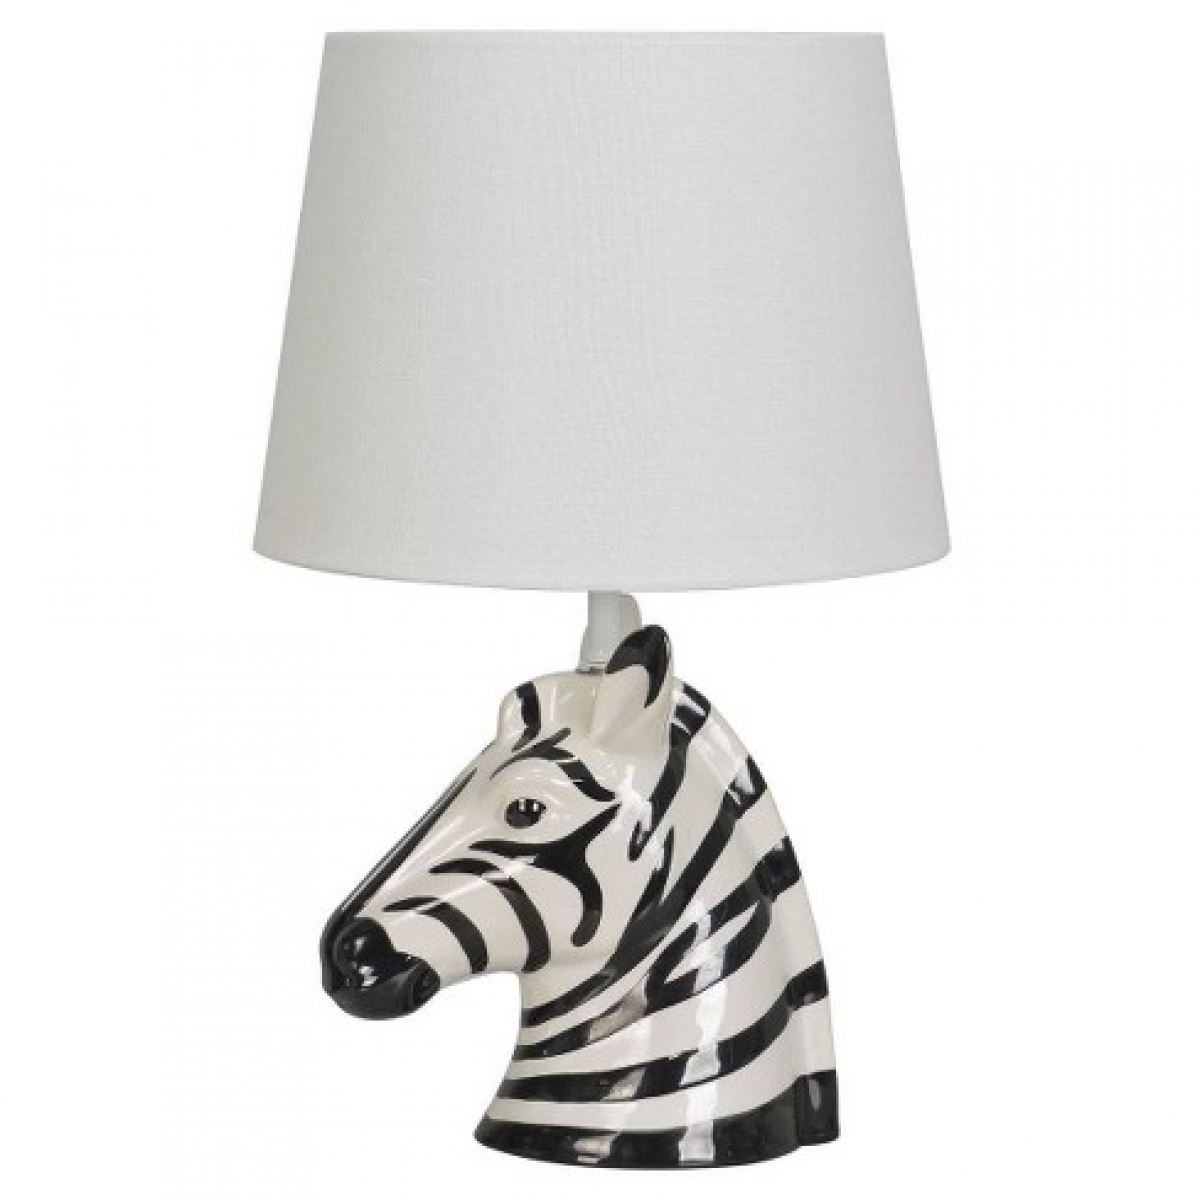 Novelty Table Lamps You'll Love